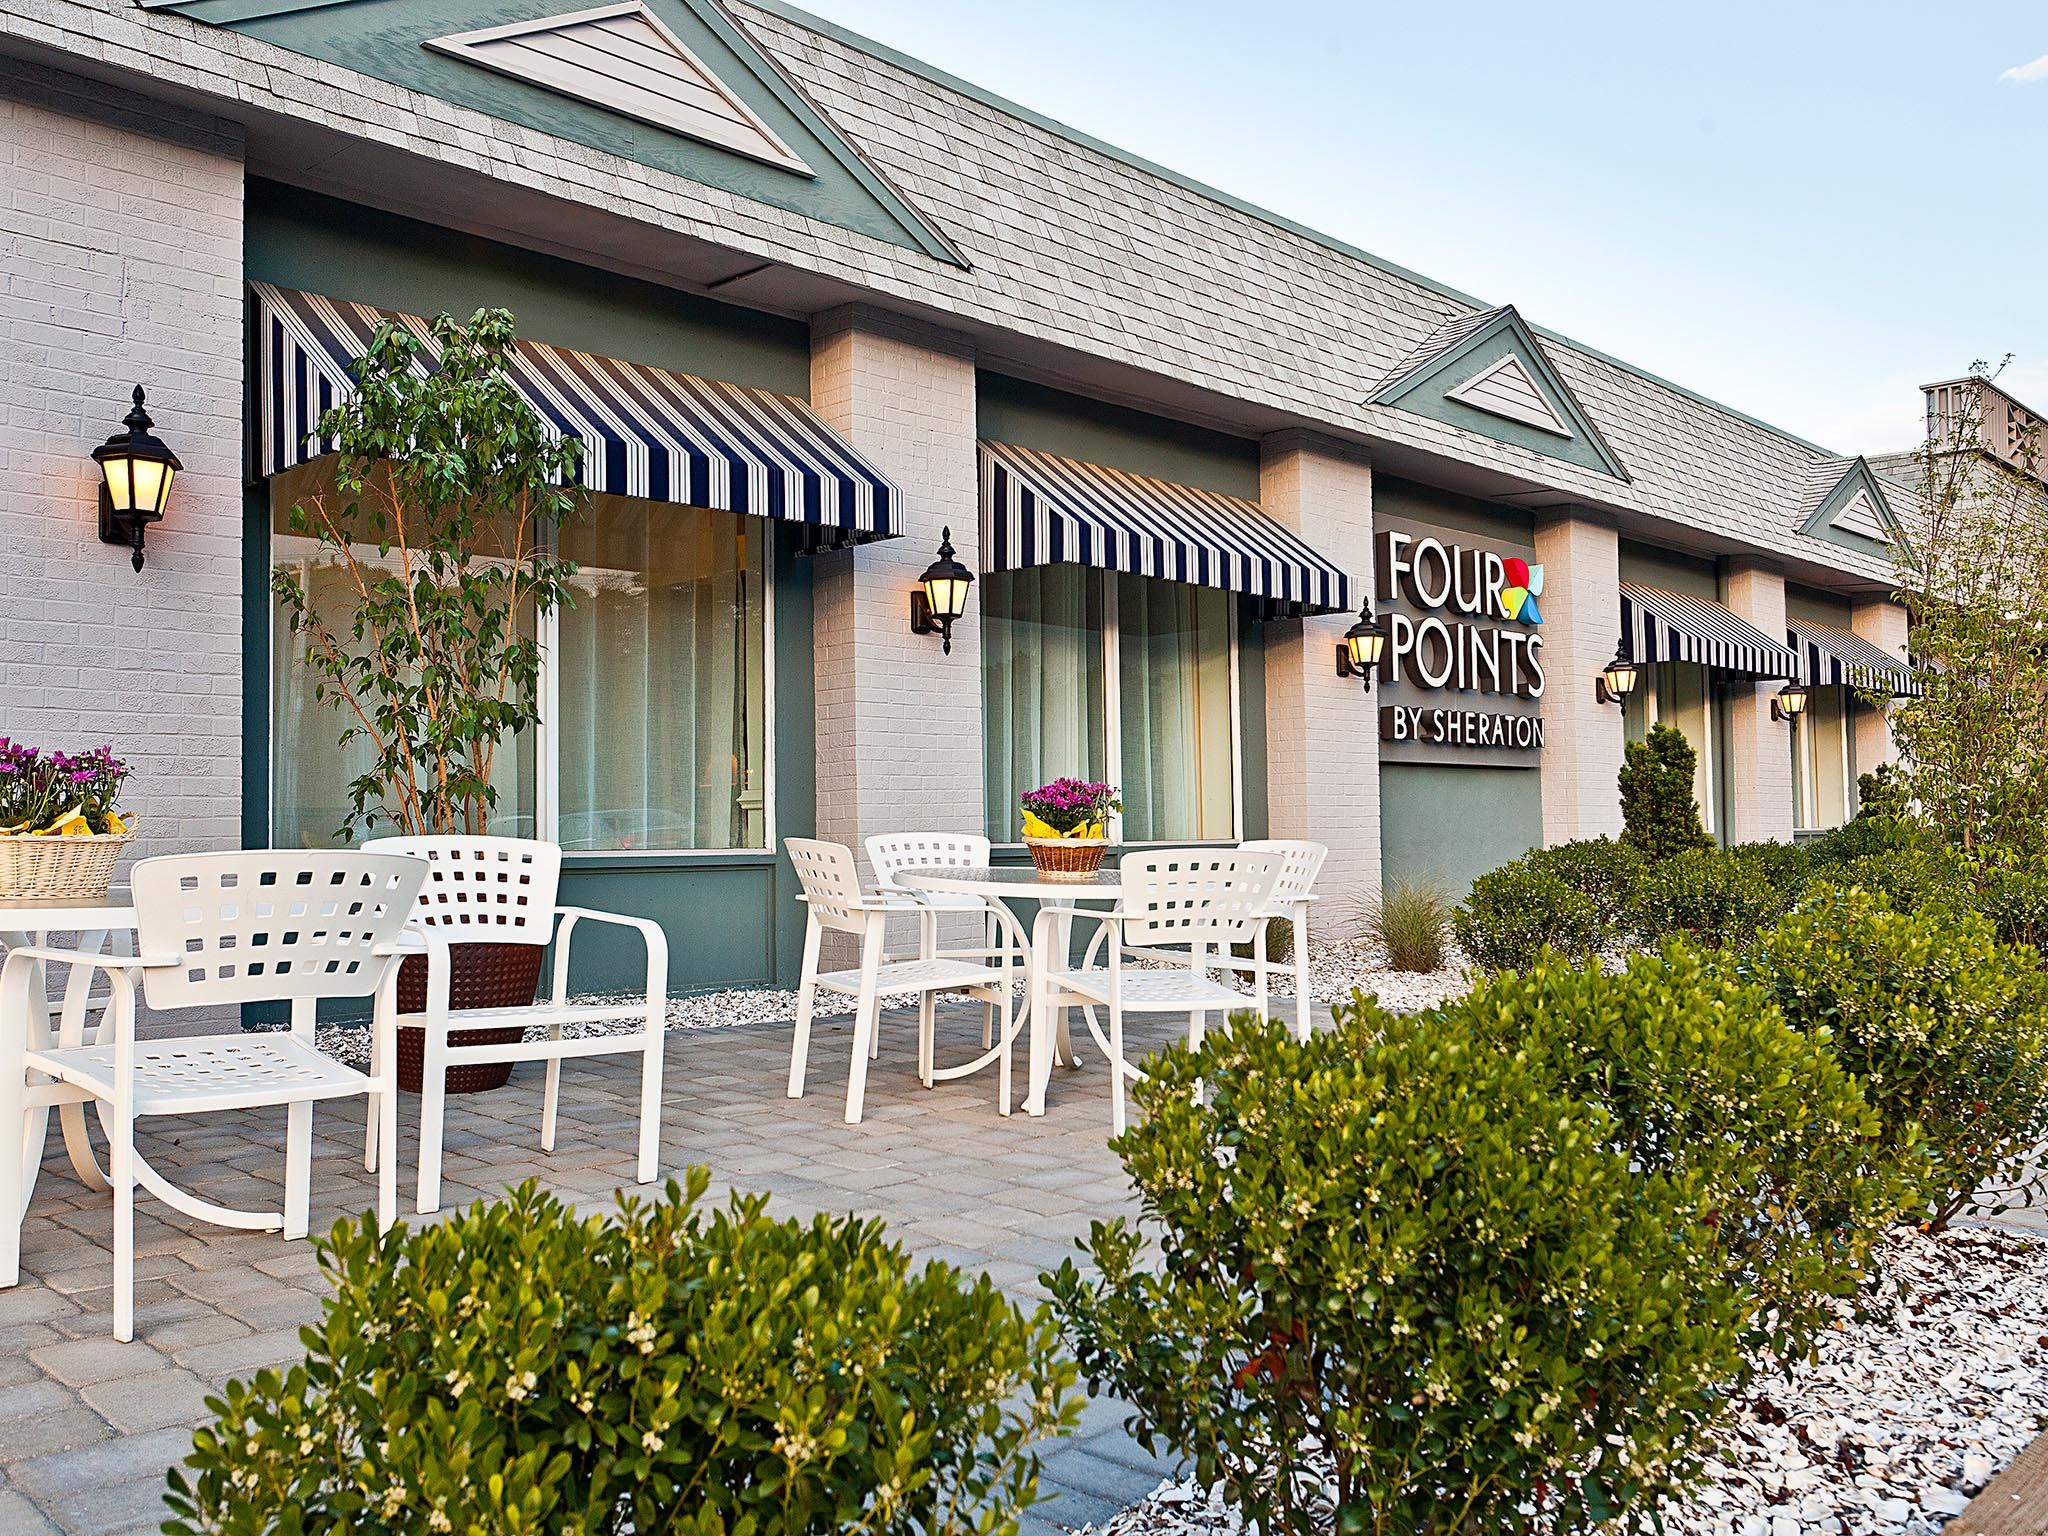 Looking For Eastham Ma Hotels Check Out The Great Hotel Offers And Amenities Available At Four Points By Sheraton Estham Cape Cod